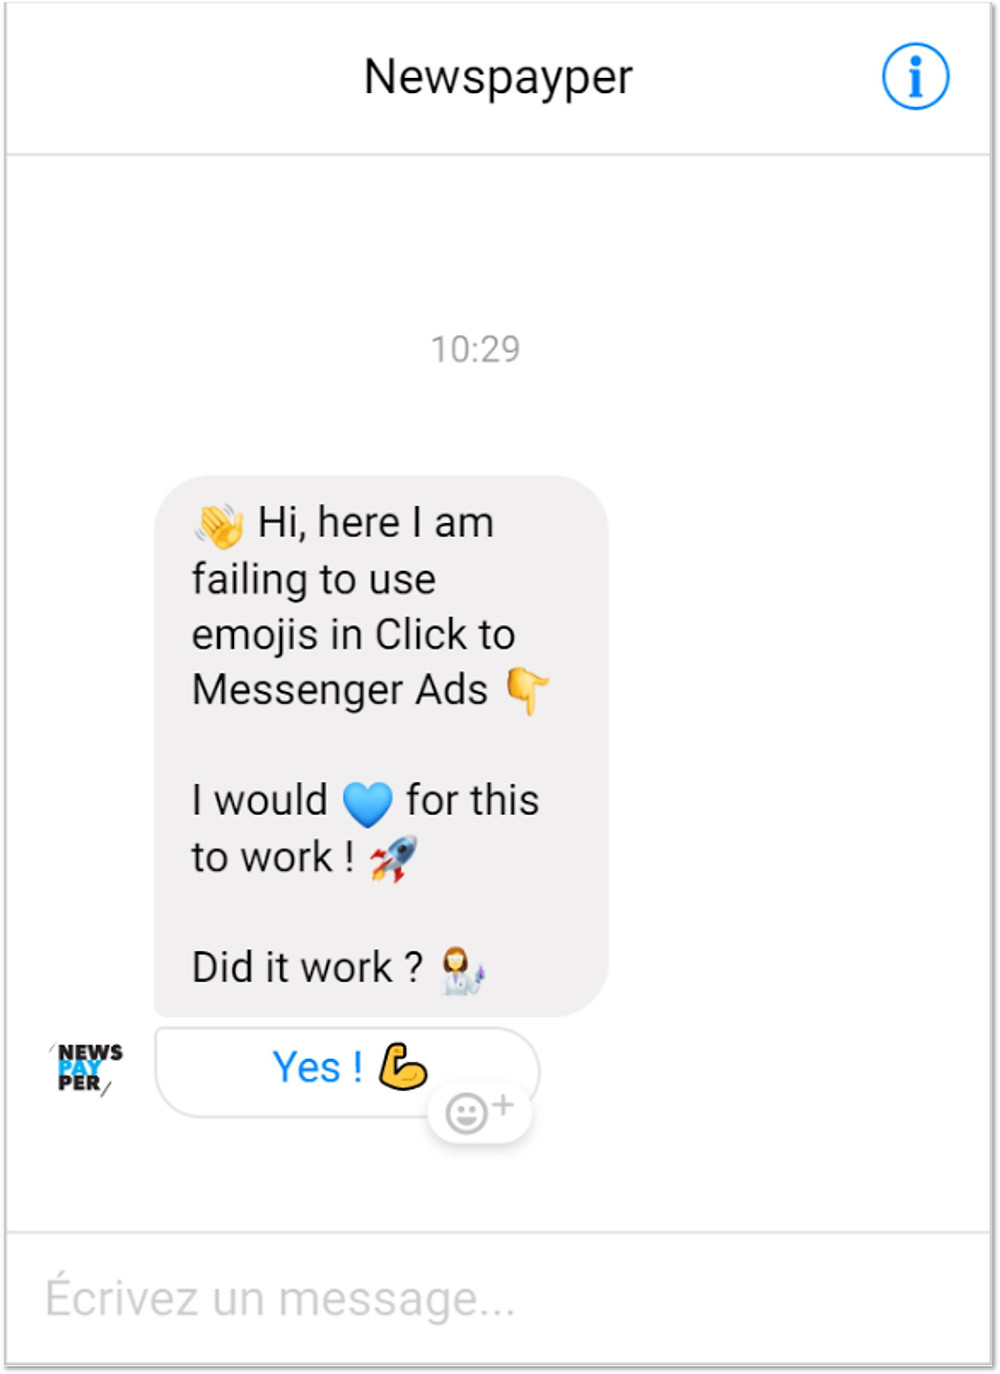 Expectations regarding emojis in Business Manager